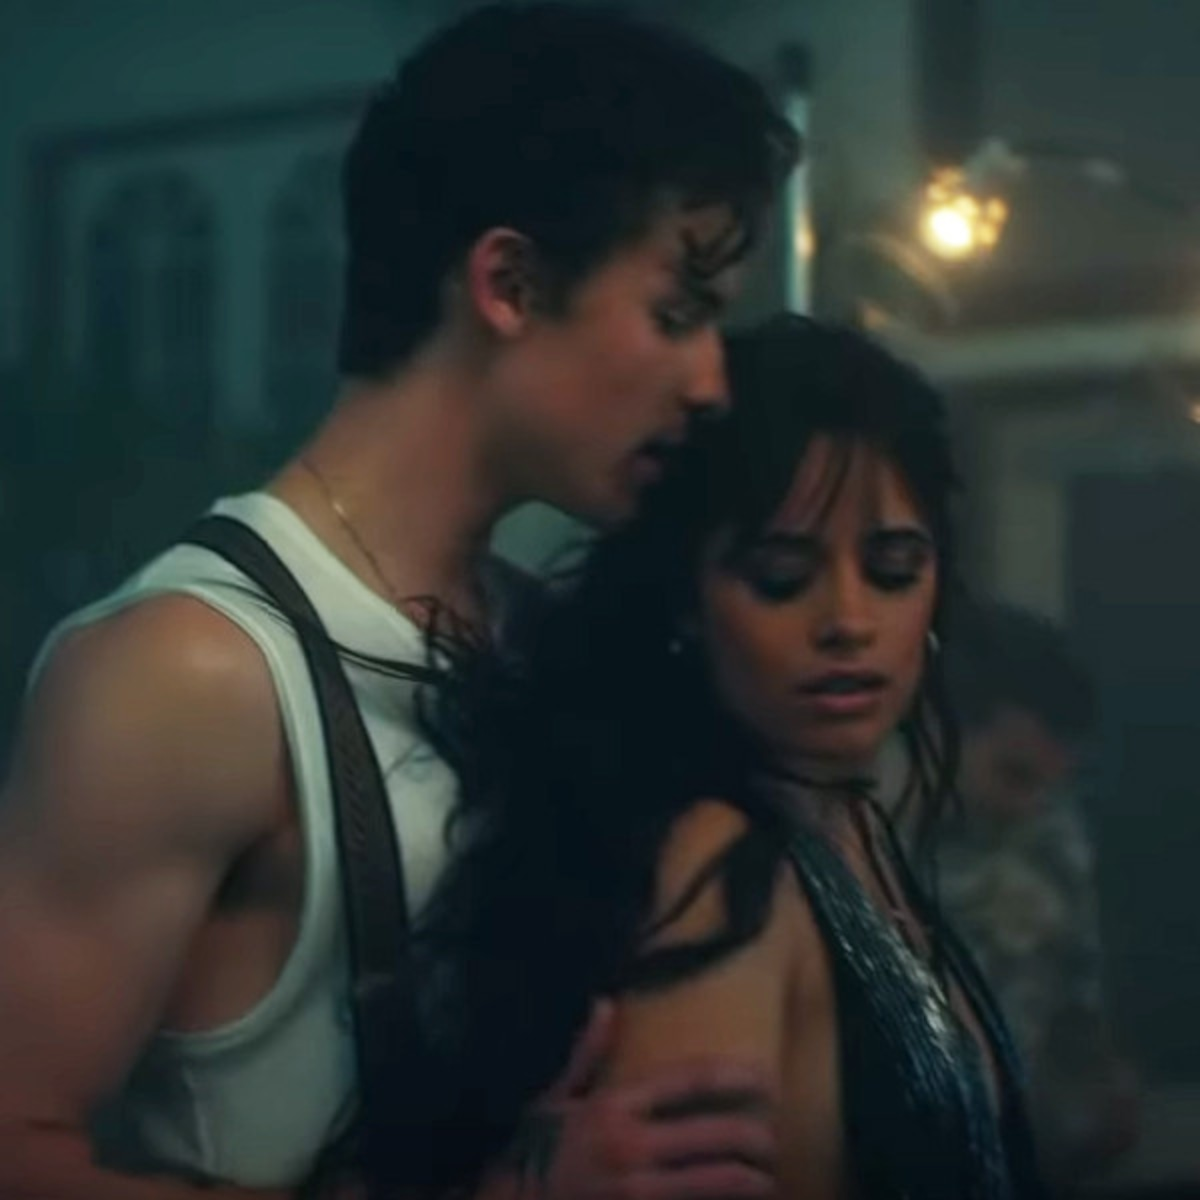 Camila Cabello Says Fans Will Hate Her For This Shawn Mendes